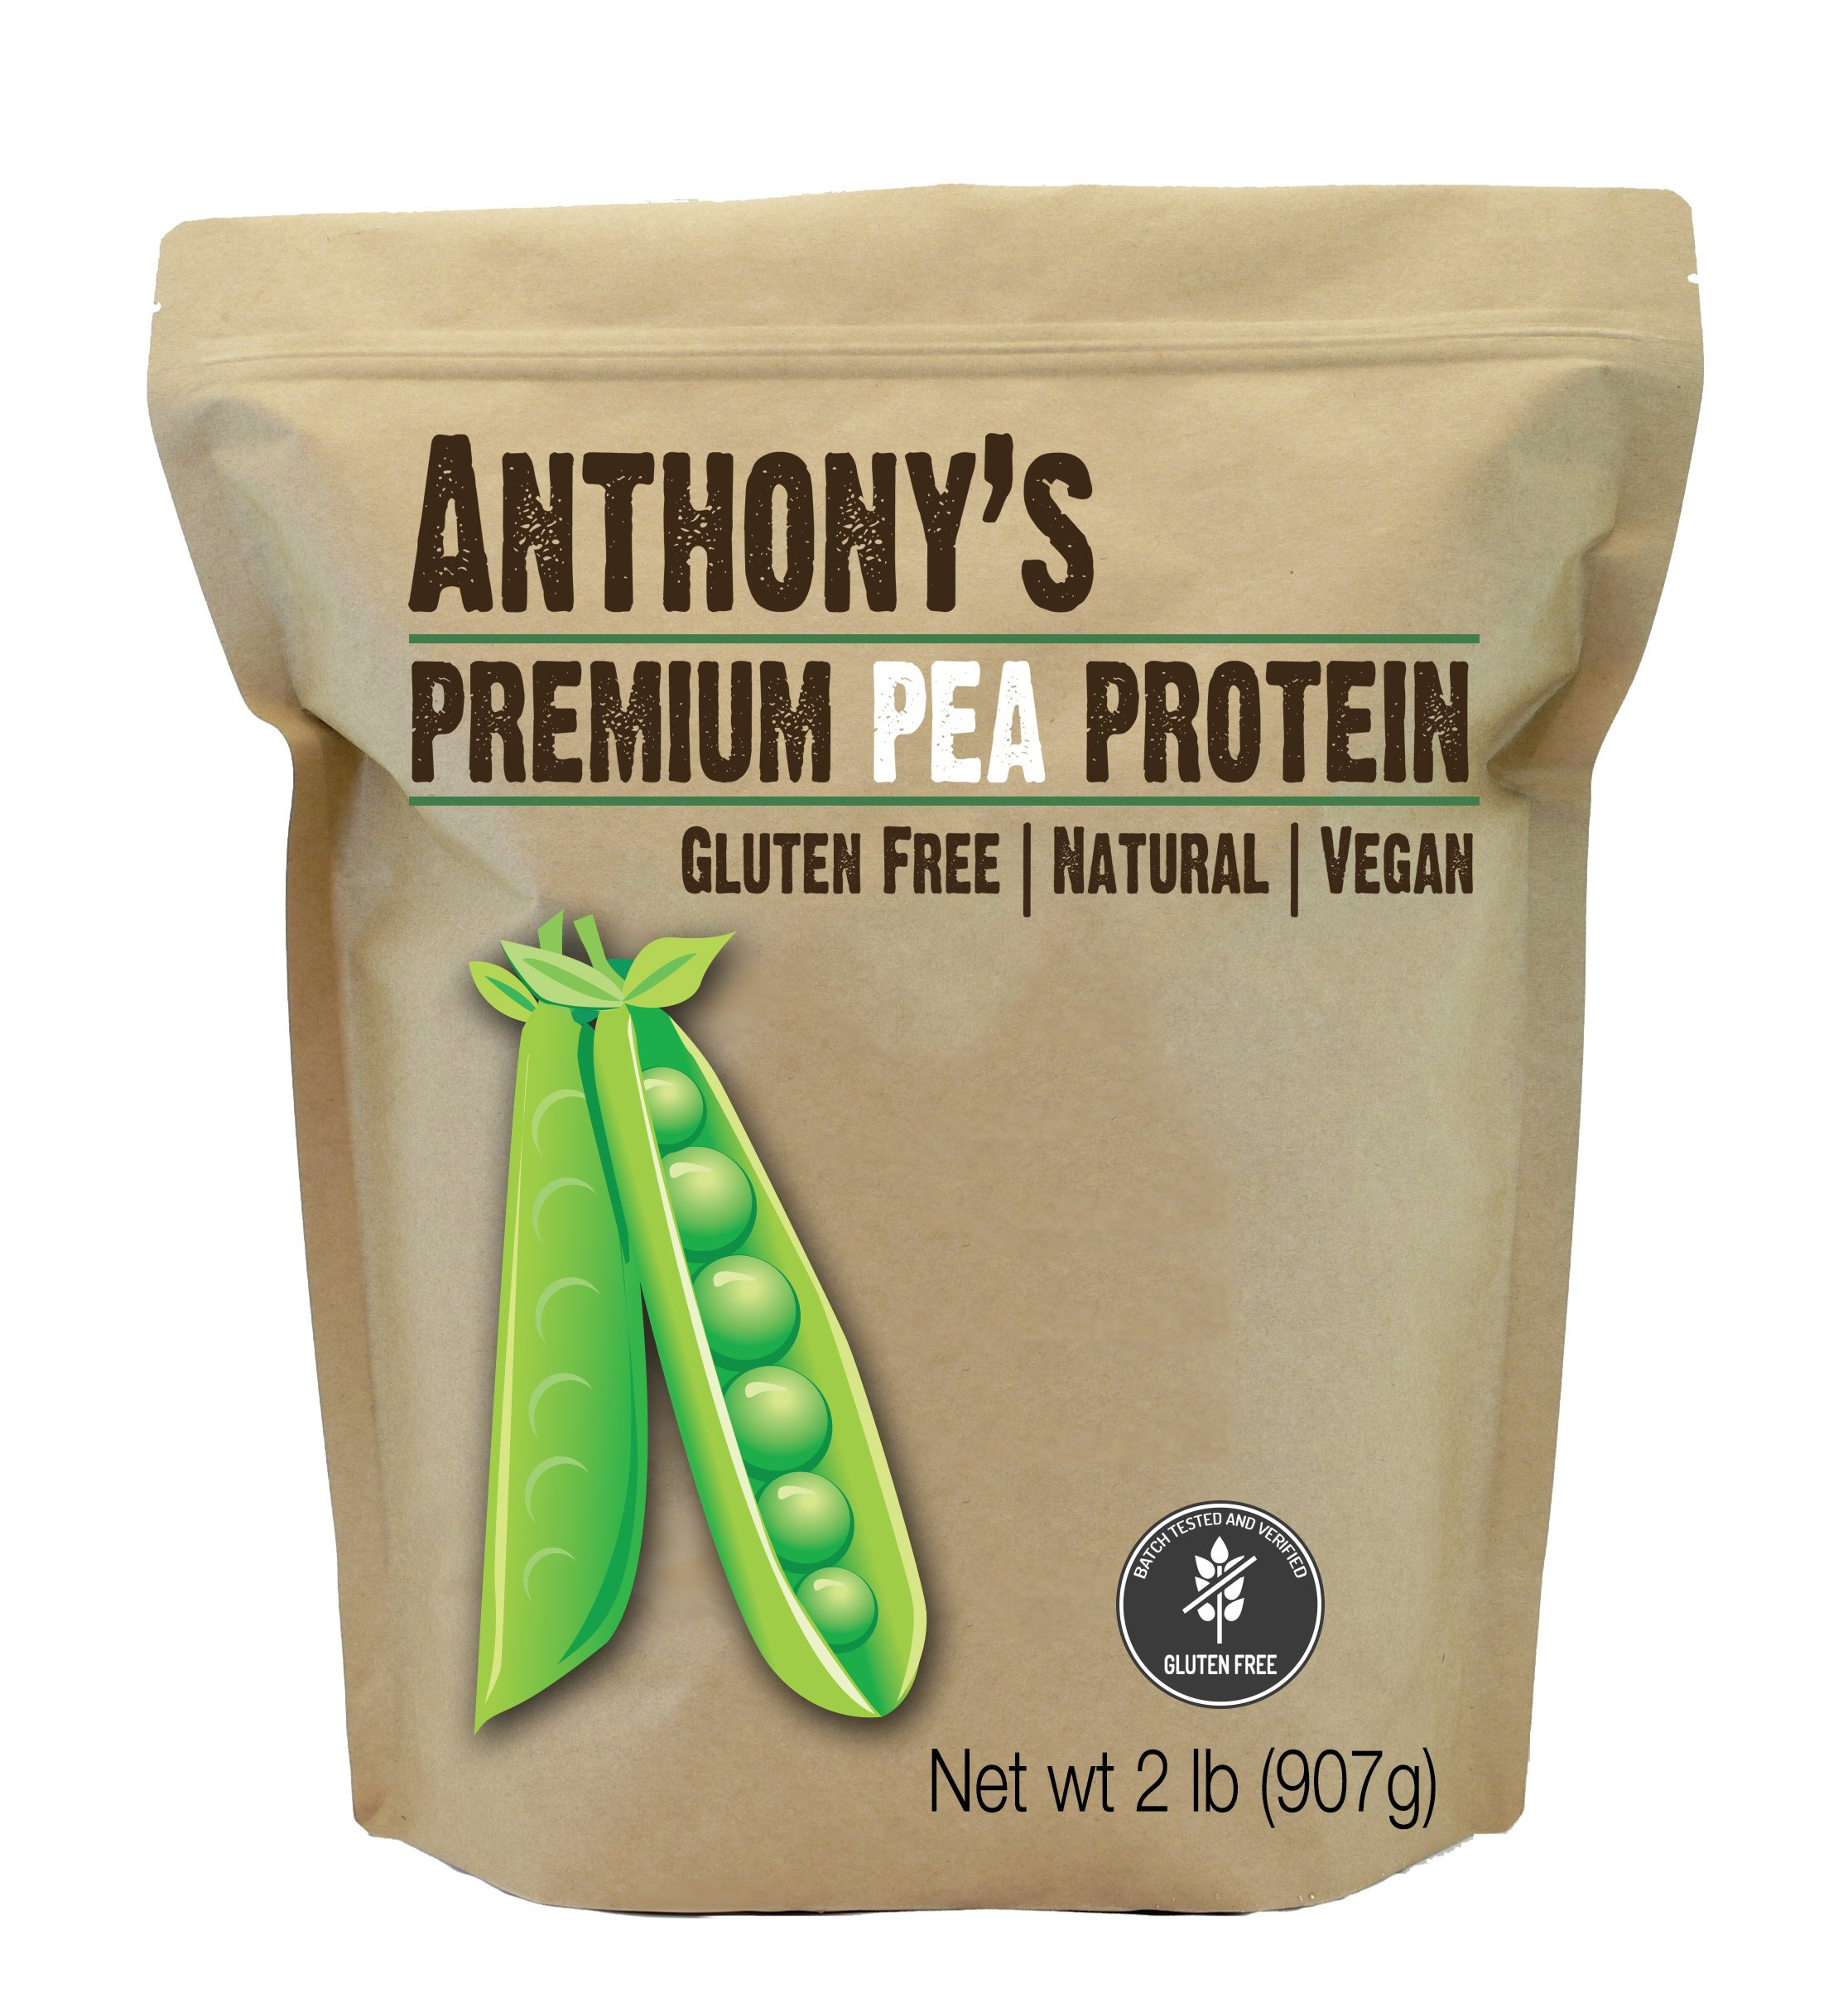 Anthony's Pea Protein, 84% Protein, 2lbs, Plant Based, Gluten Free, Keto Friendly by Anthony's